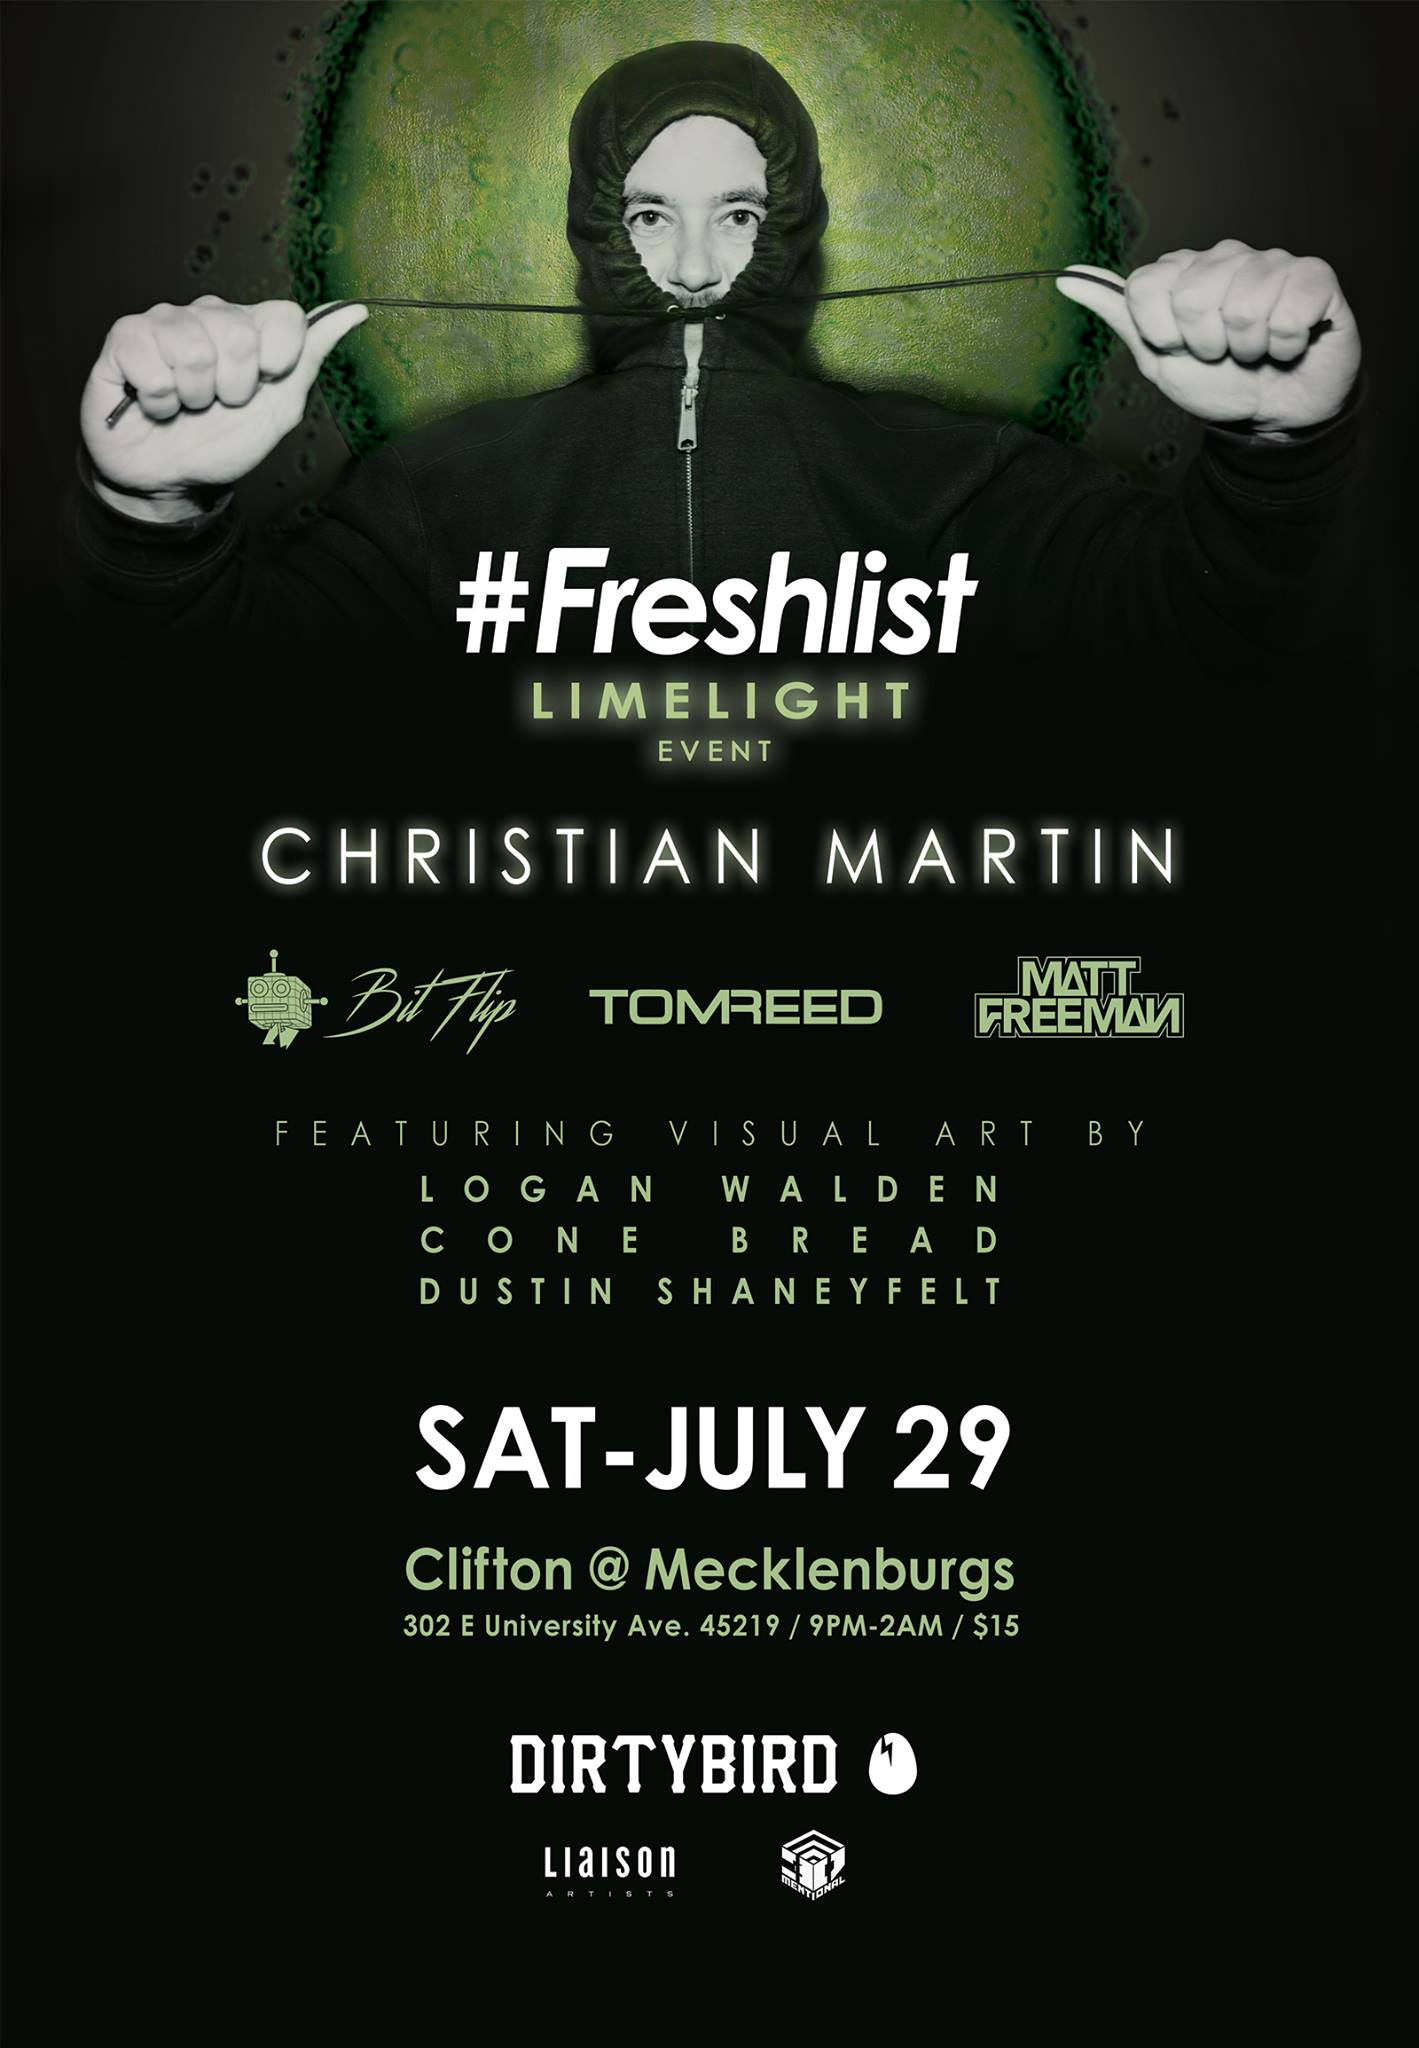 LIMELIGHT 01: Dirtybird Presents Christian Martin